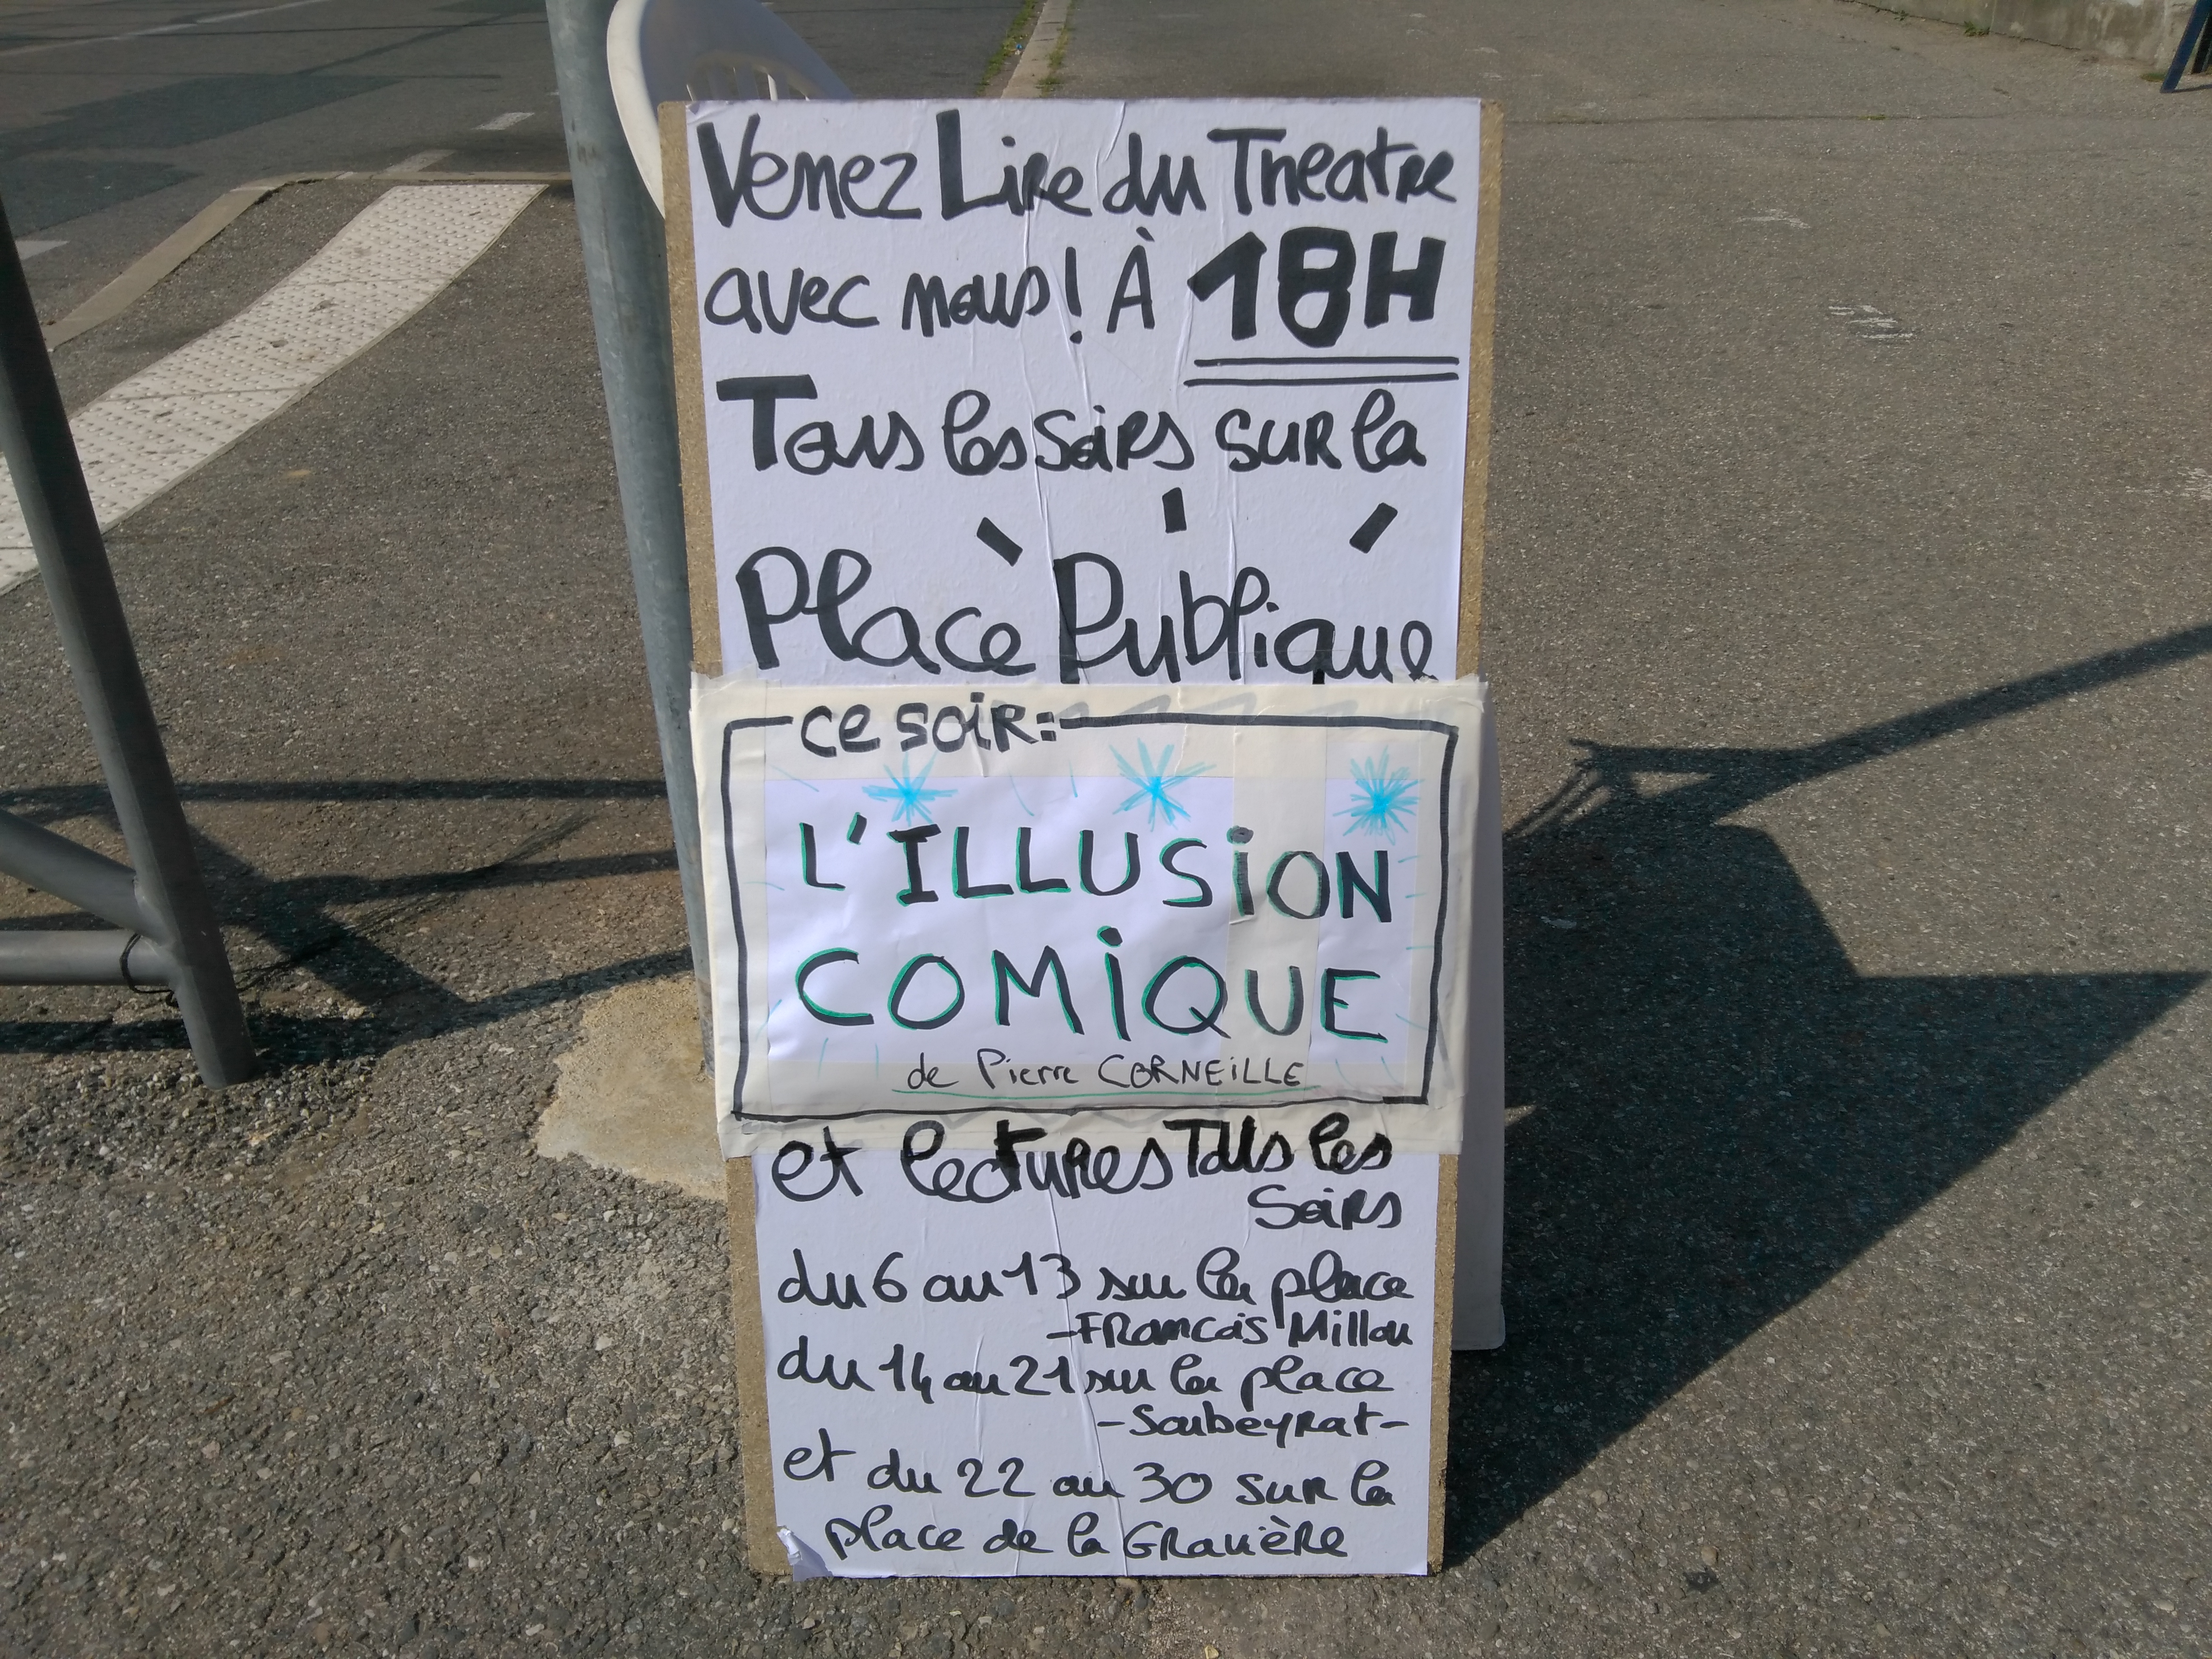 Lecture Publique de L'ILLUSION COMIQUE, de Pierre Corneille